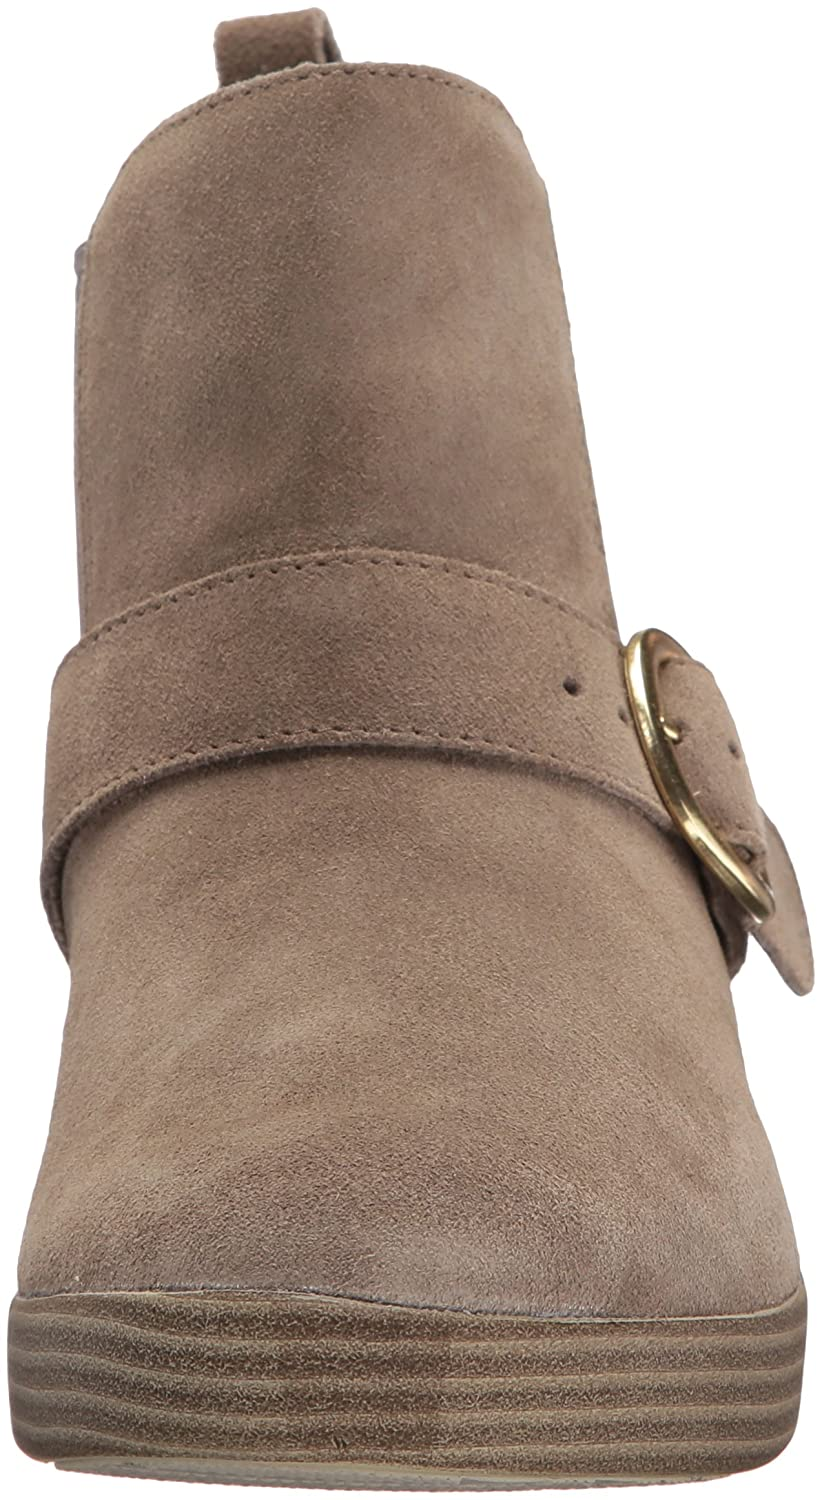 FitFlop Women's Superbuckle Suede Chelsea Fashion Boot B075ZXWMQ7 5 B(M) US|Desert Stone